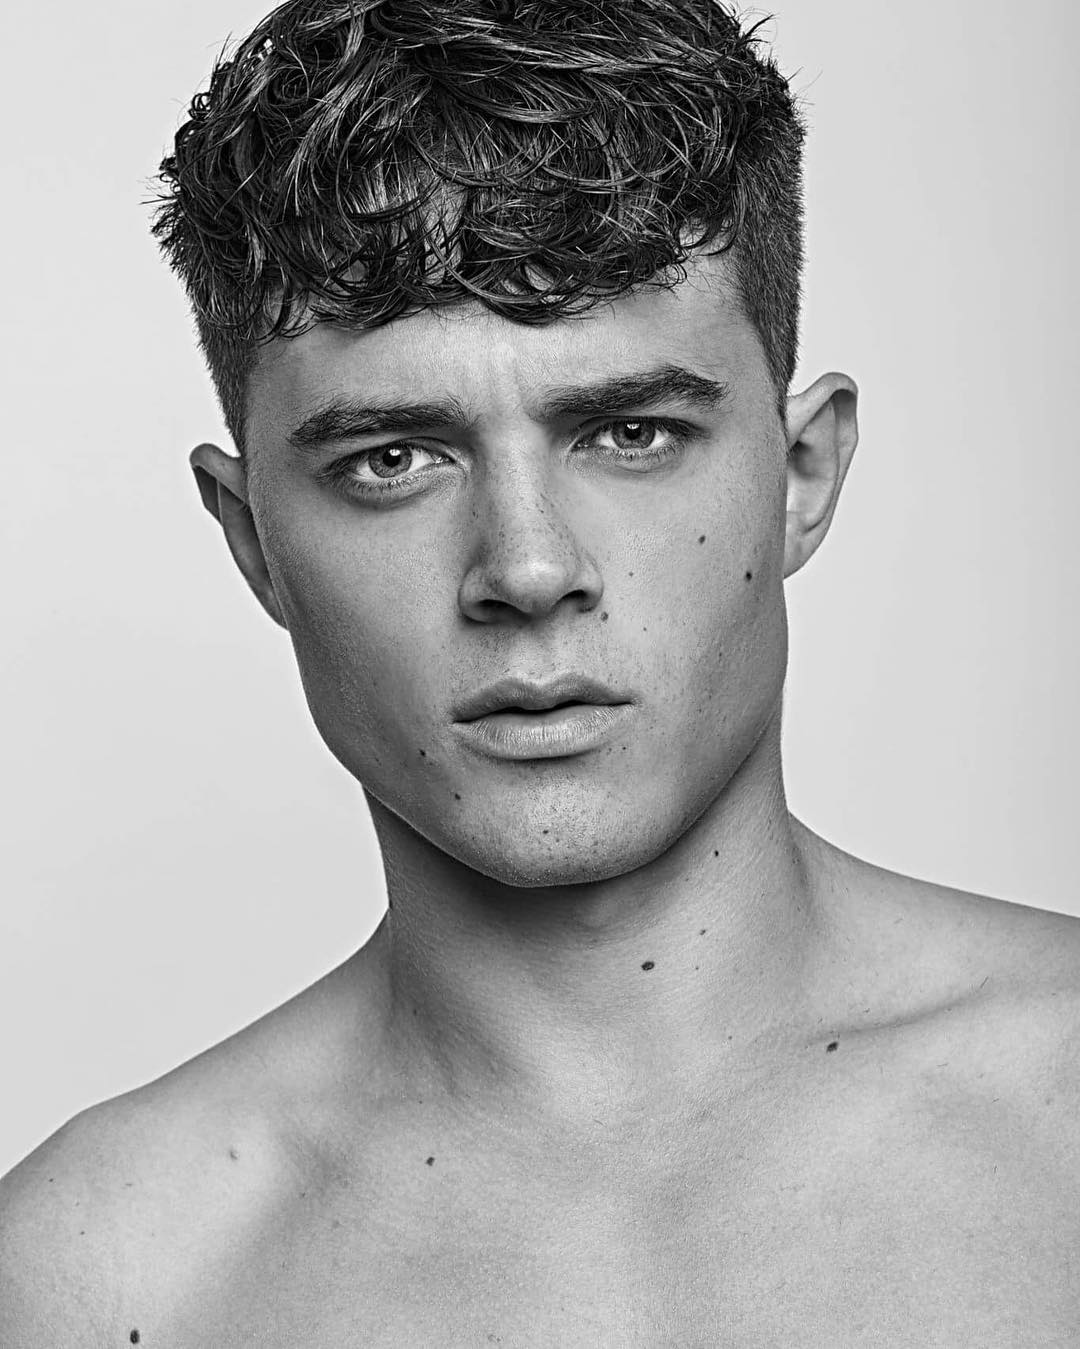 Short Curly Hairstyles For Men 2018 15